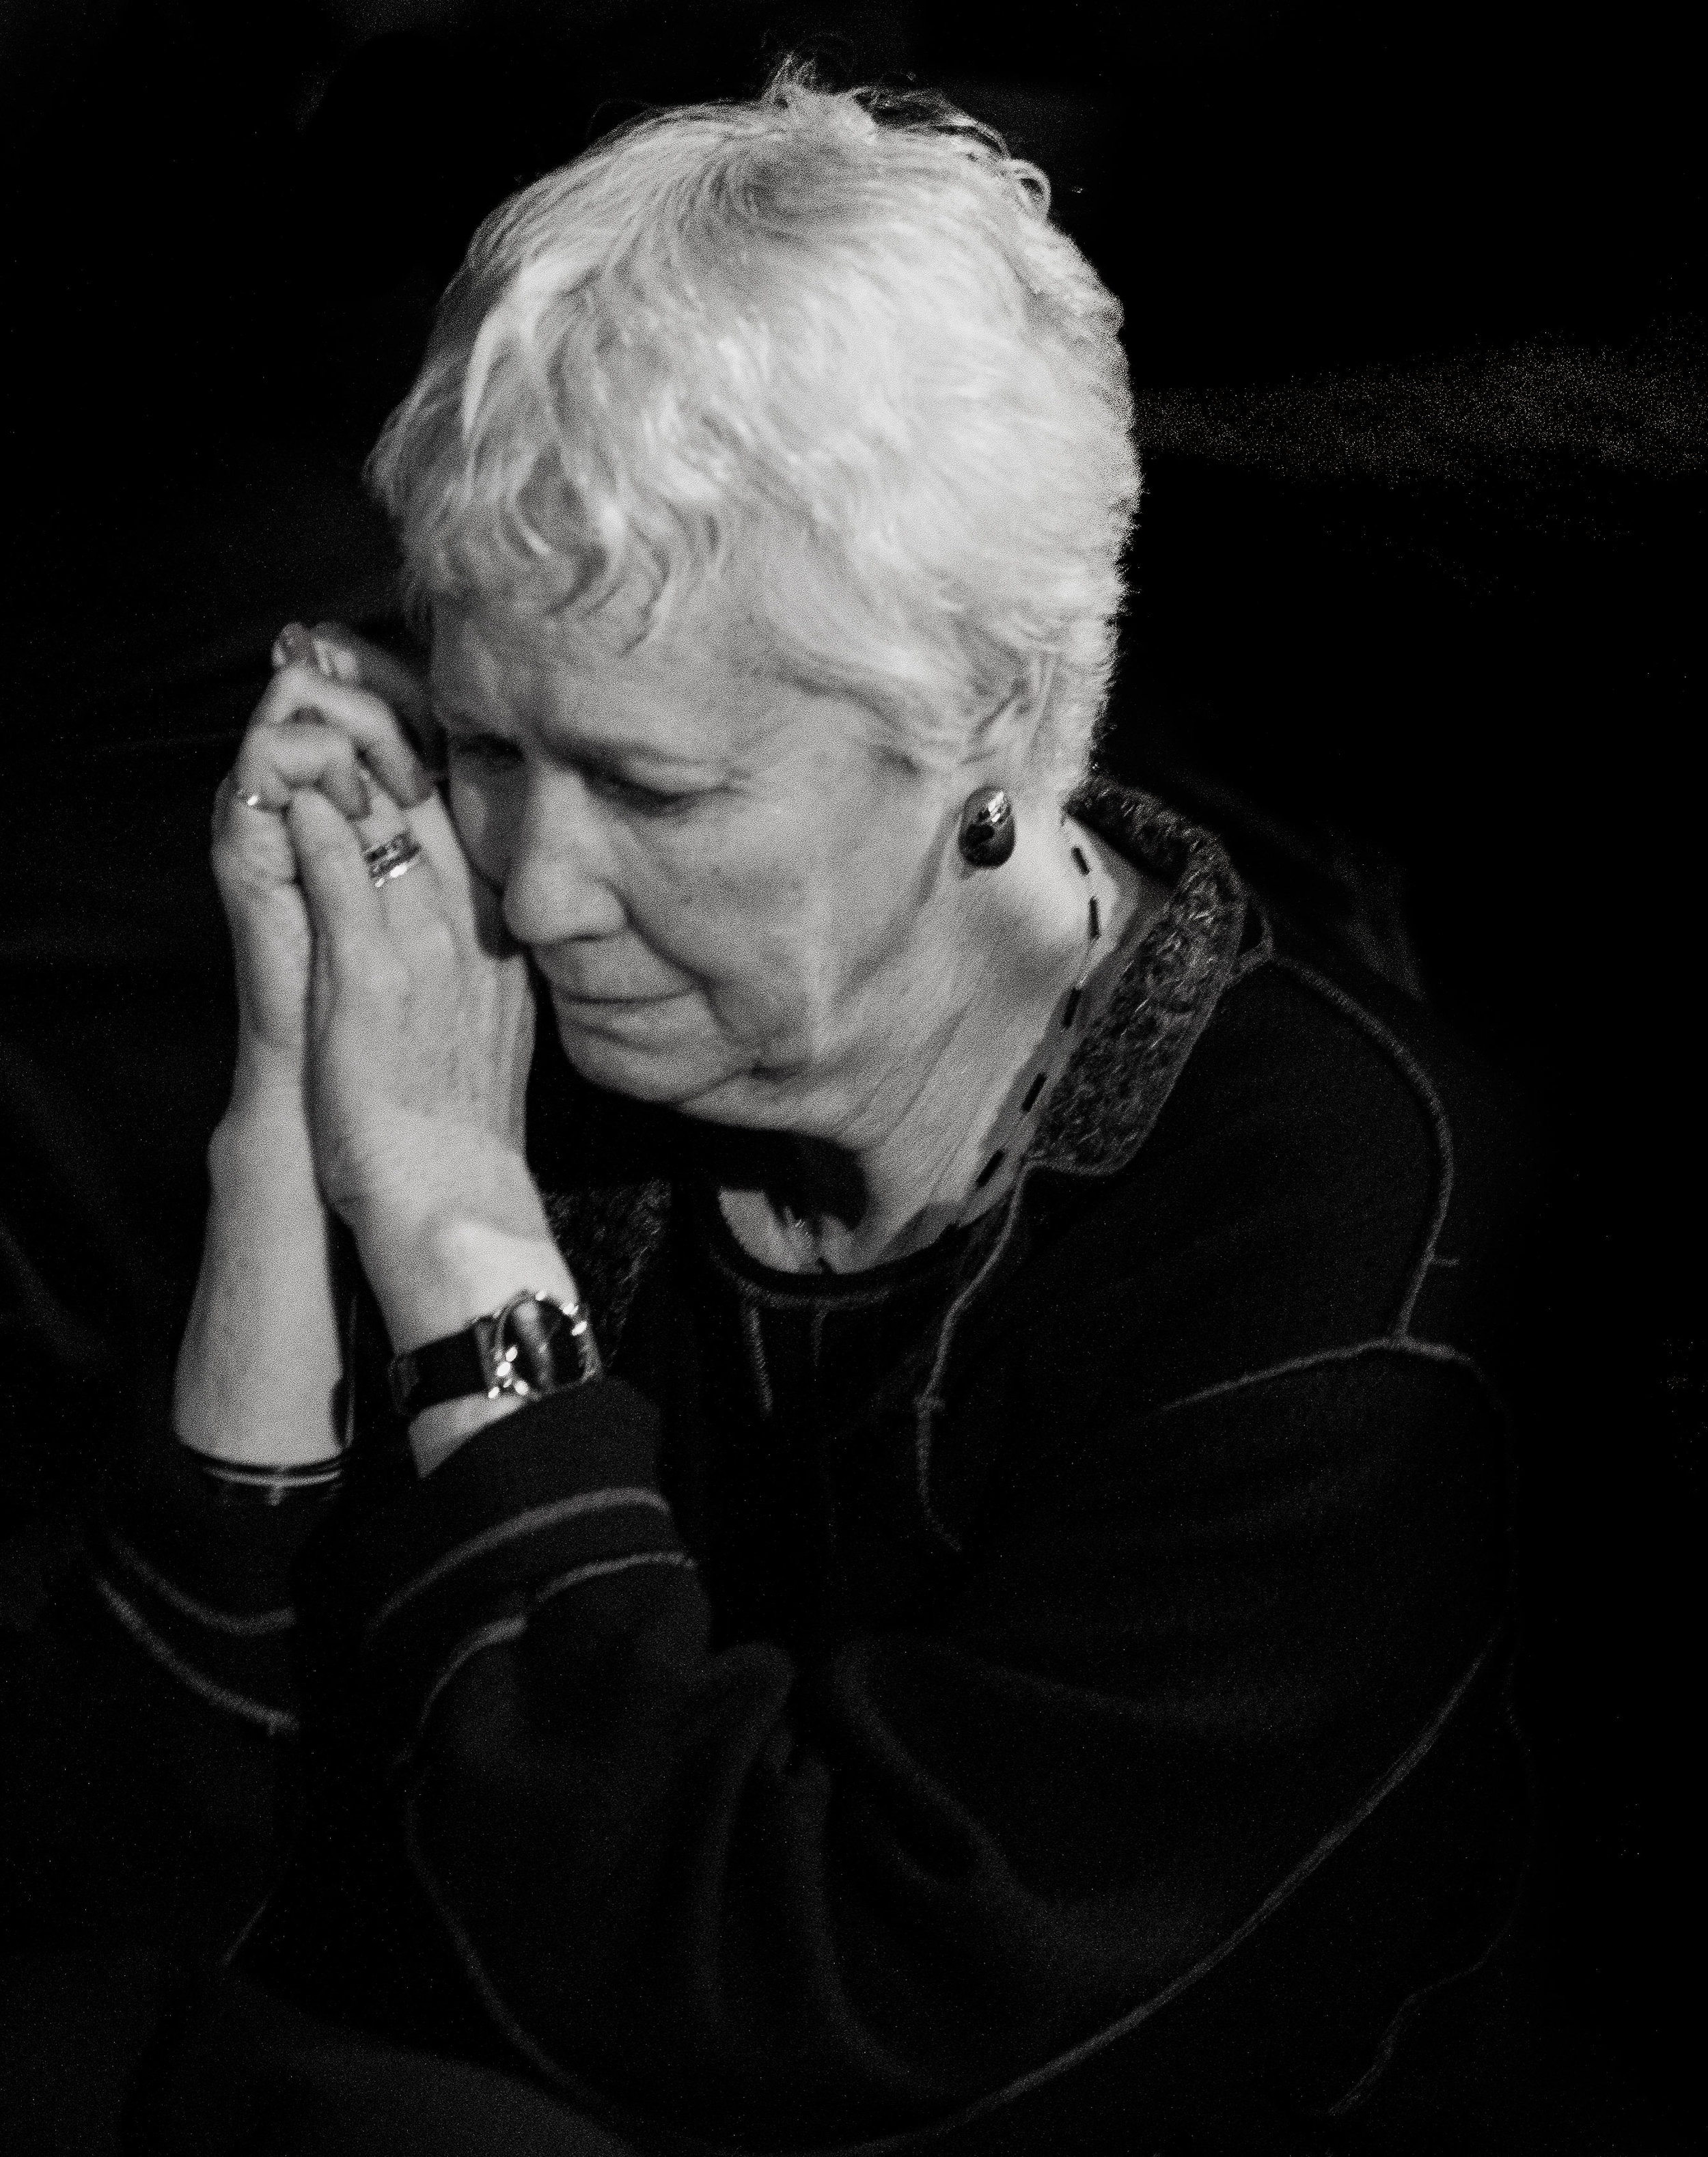 Maravene Loeschke, president of Towson University, takes a moment to herself after delivering a speech at the candlelight vigil for Towson University students  Ryan Bailey and Timothy Coyer, who died Saturday, March 31, 2012 in  separate incidents.